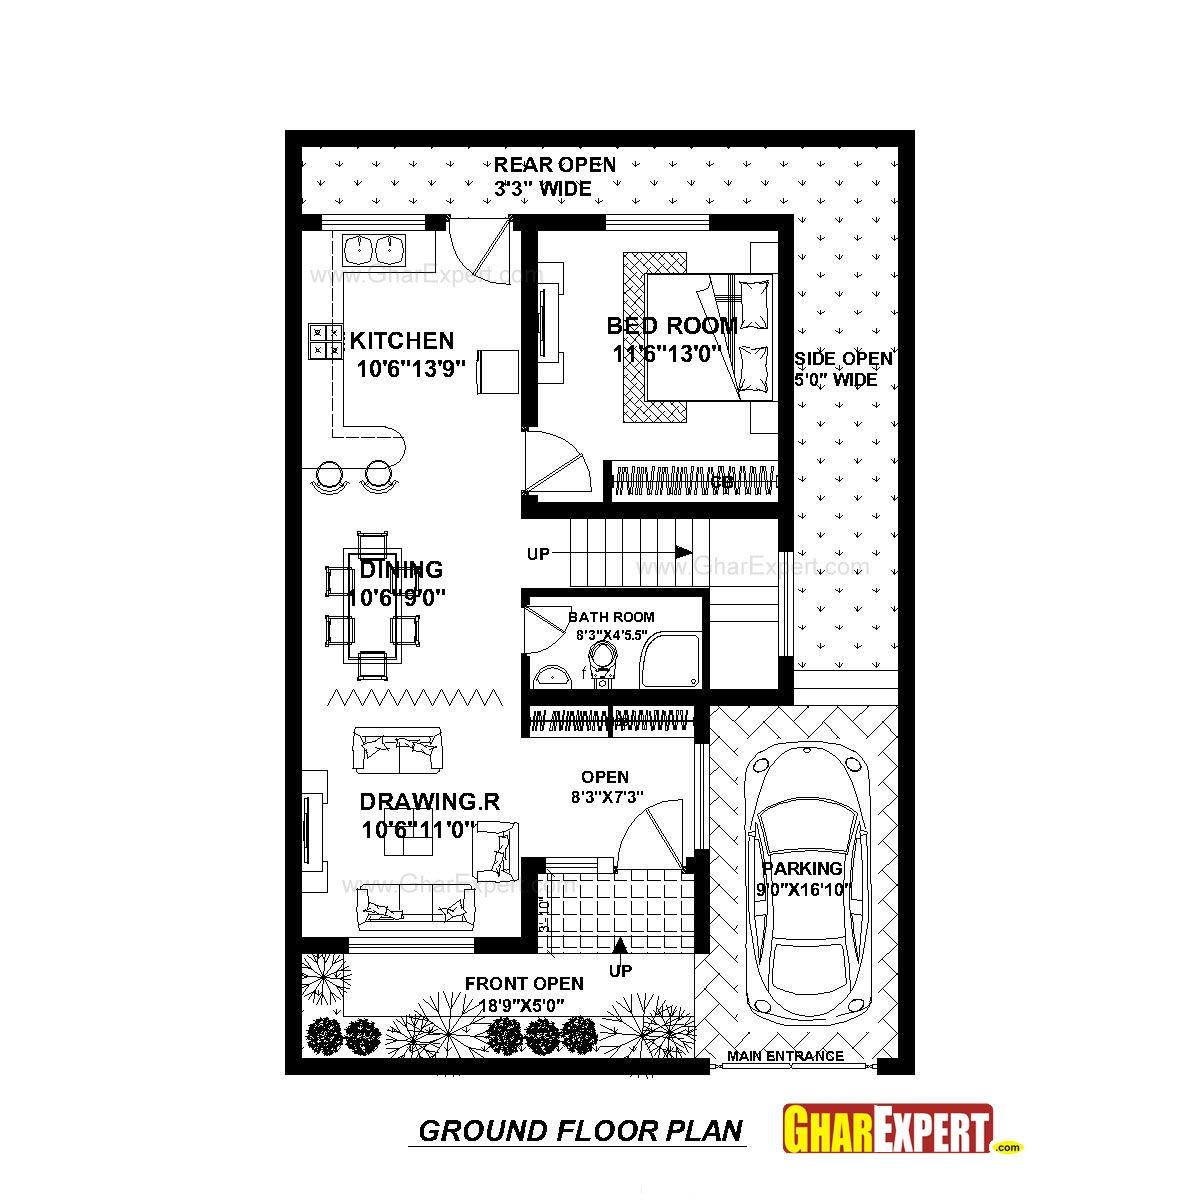 House Plan For 30 Feet By 45 Feet Plot Plot Size 150 Square Yards Gharexpert Com 20x30 House Plans How To Plan House Plans